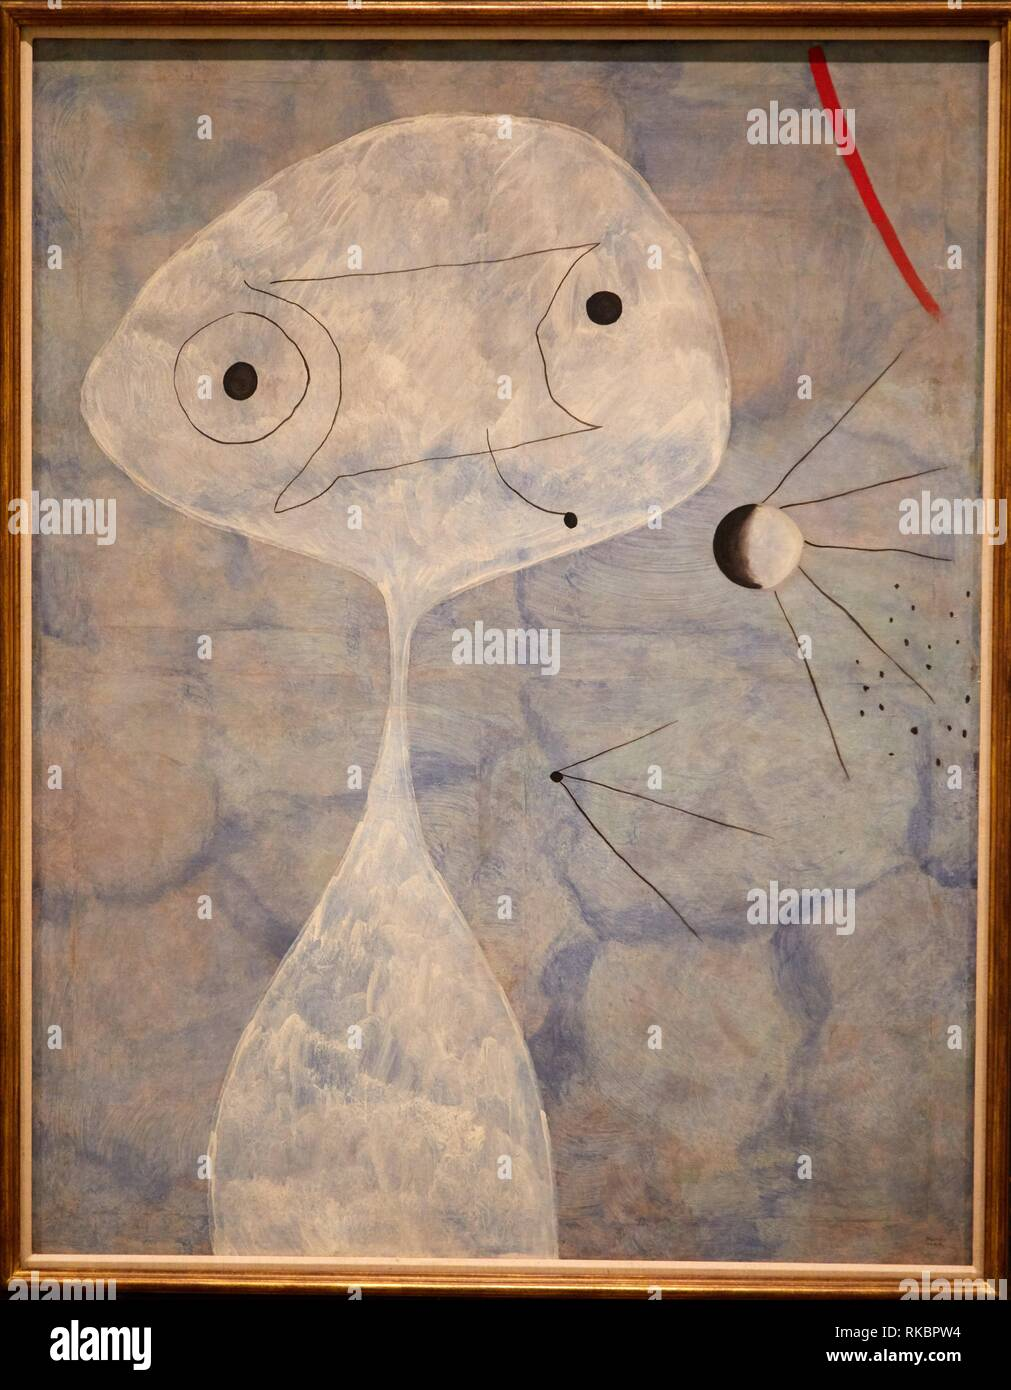 Painting (Man with a Pipe), 1925, Joan Miró, Museo Nacional Centro de Arte Reina Sofia, Madrid, Spain, Europe - Stock Image